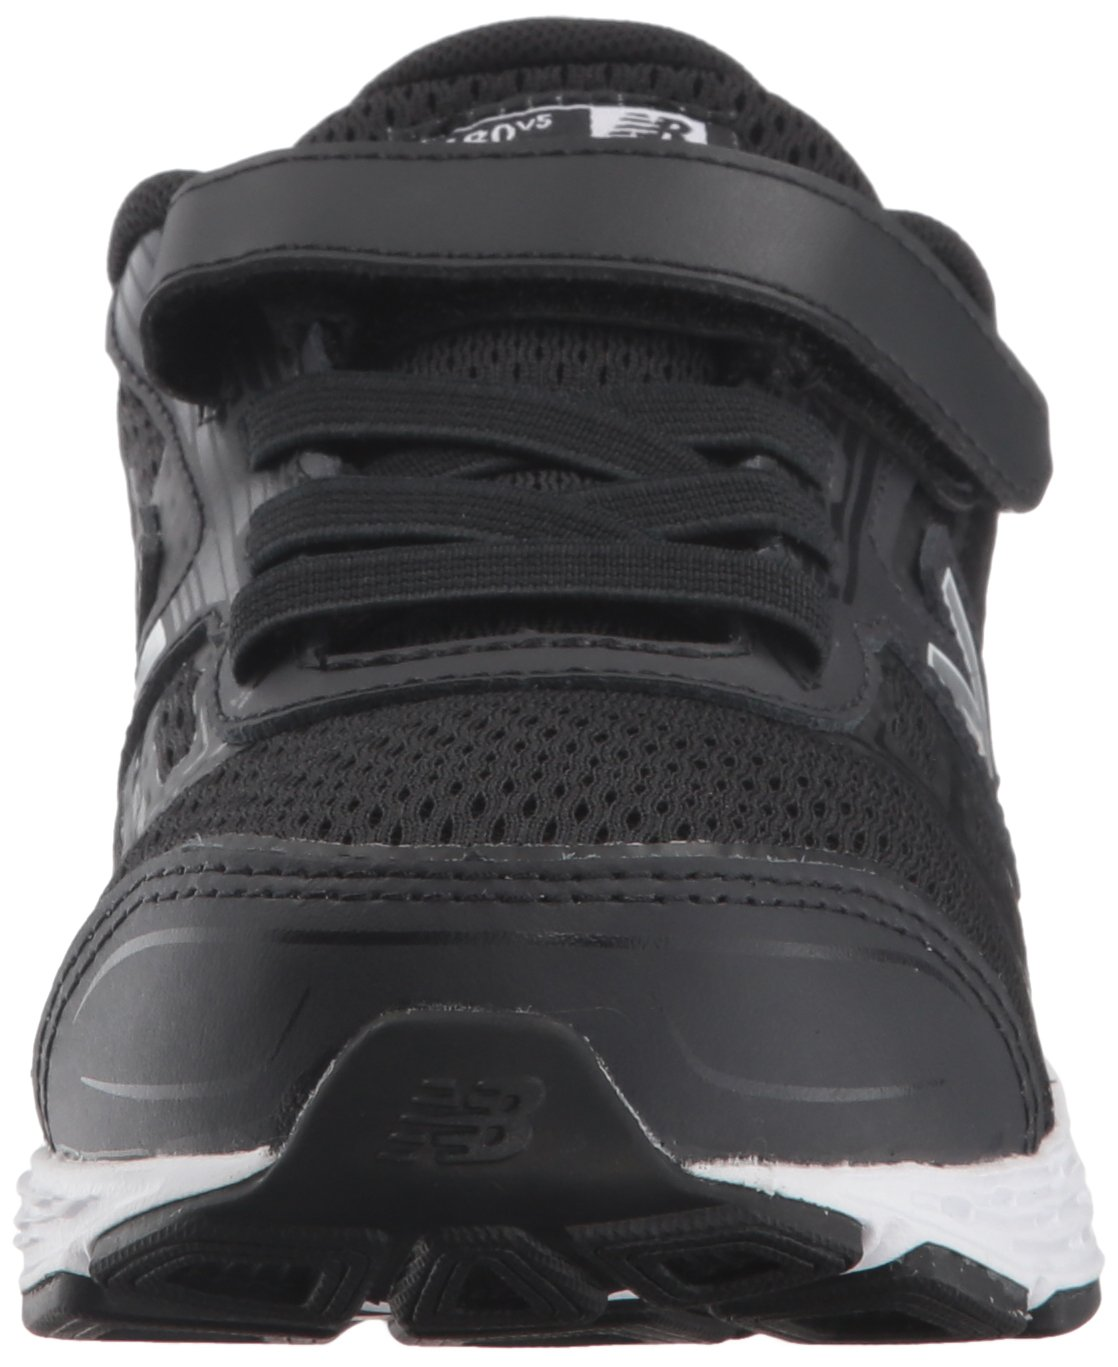 New Balance Boys' 680v5 Hook and Loop Running Shoe, Black/White, 9 M US Toddler by New Balance (Image #4)